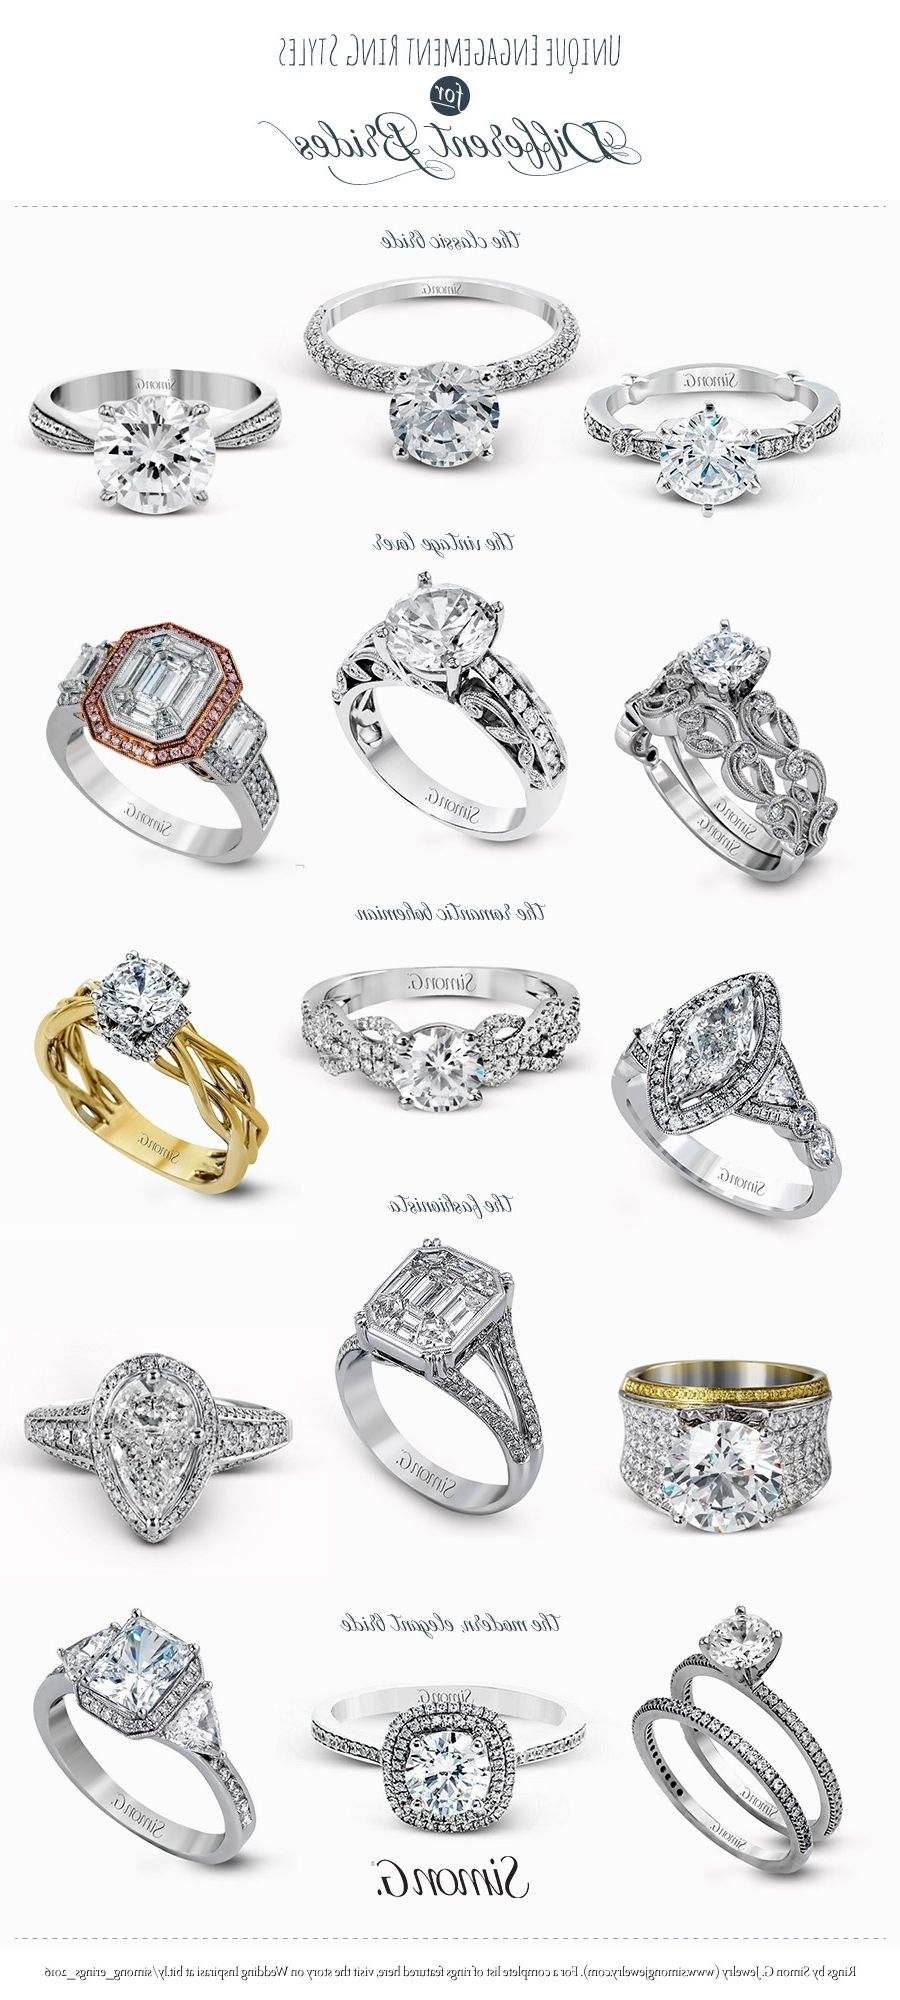 Other Types Of Engagement Rings | Ring | Pinterest | Engagement ...